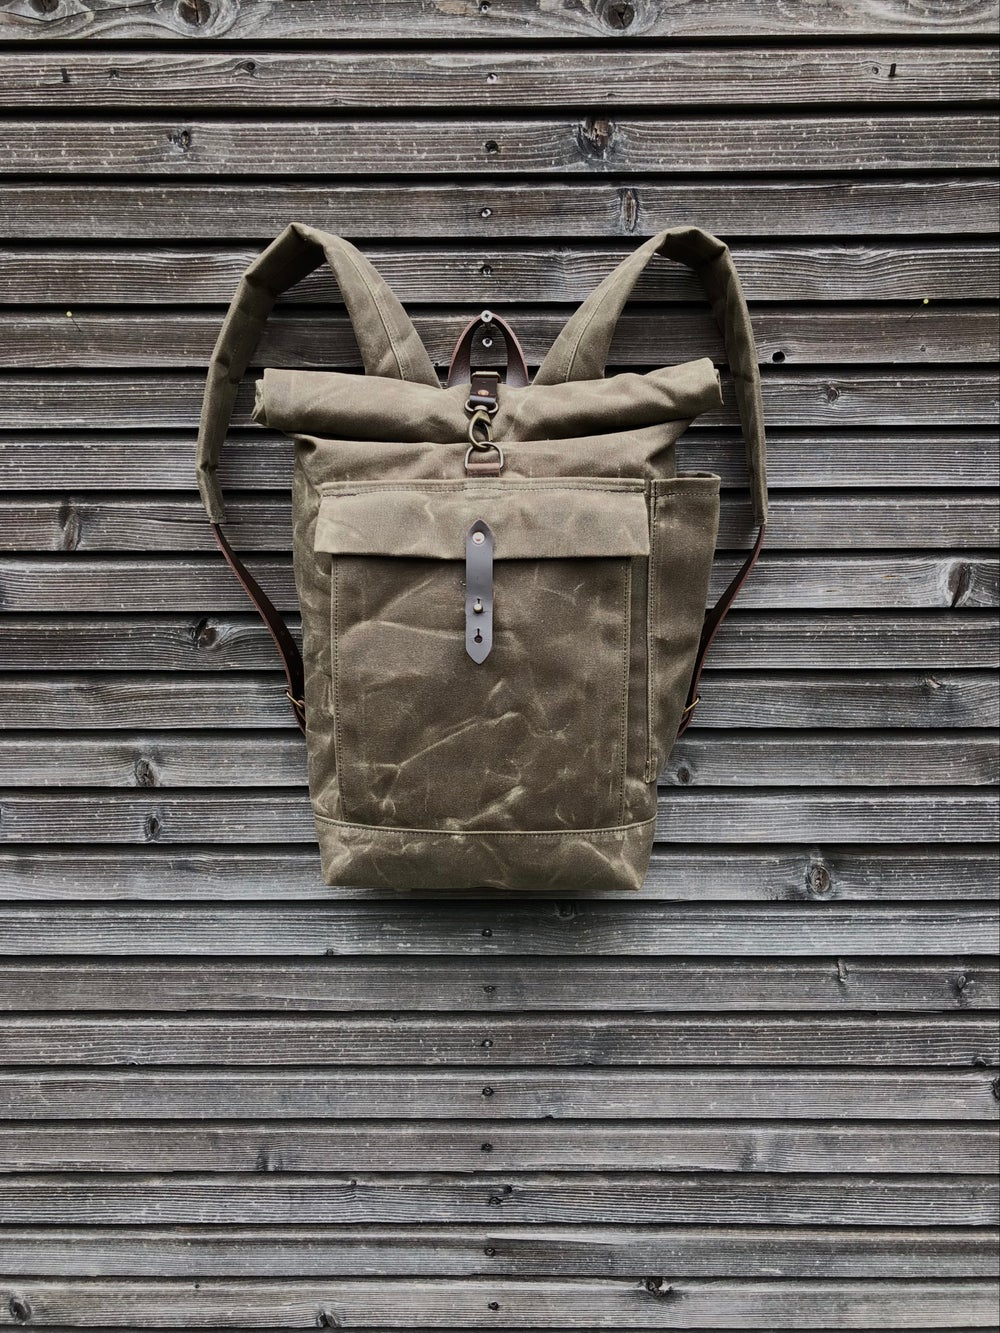 Image of School backpack in waxed canvas / waterproof backpack with padded shoulder straps and water bottle p